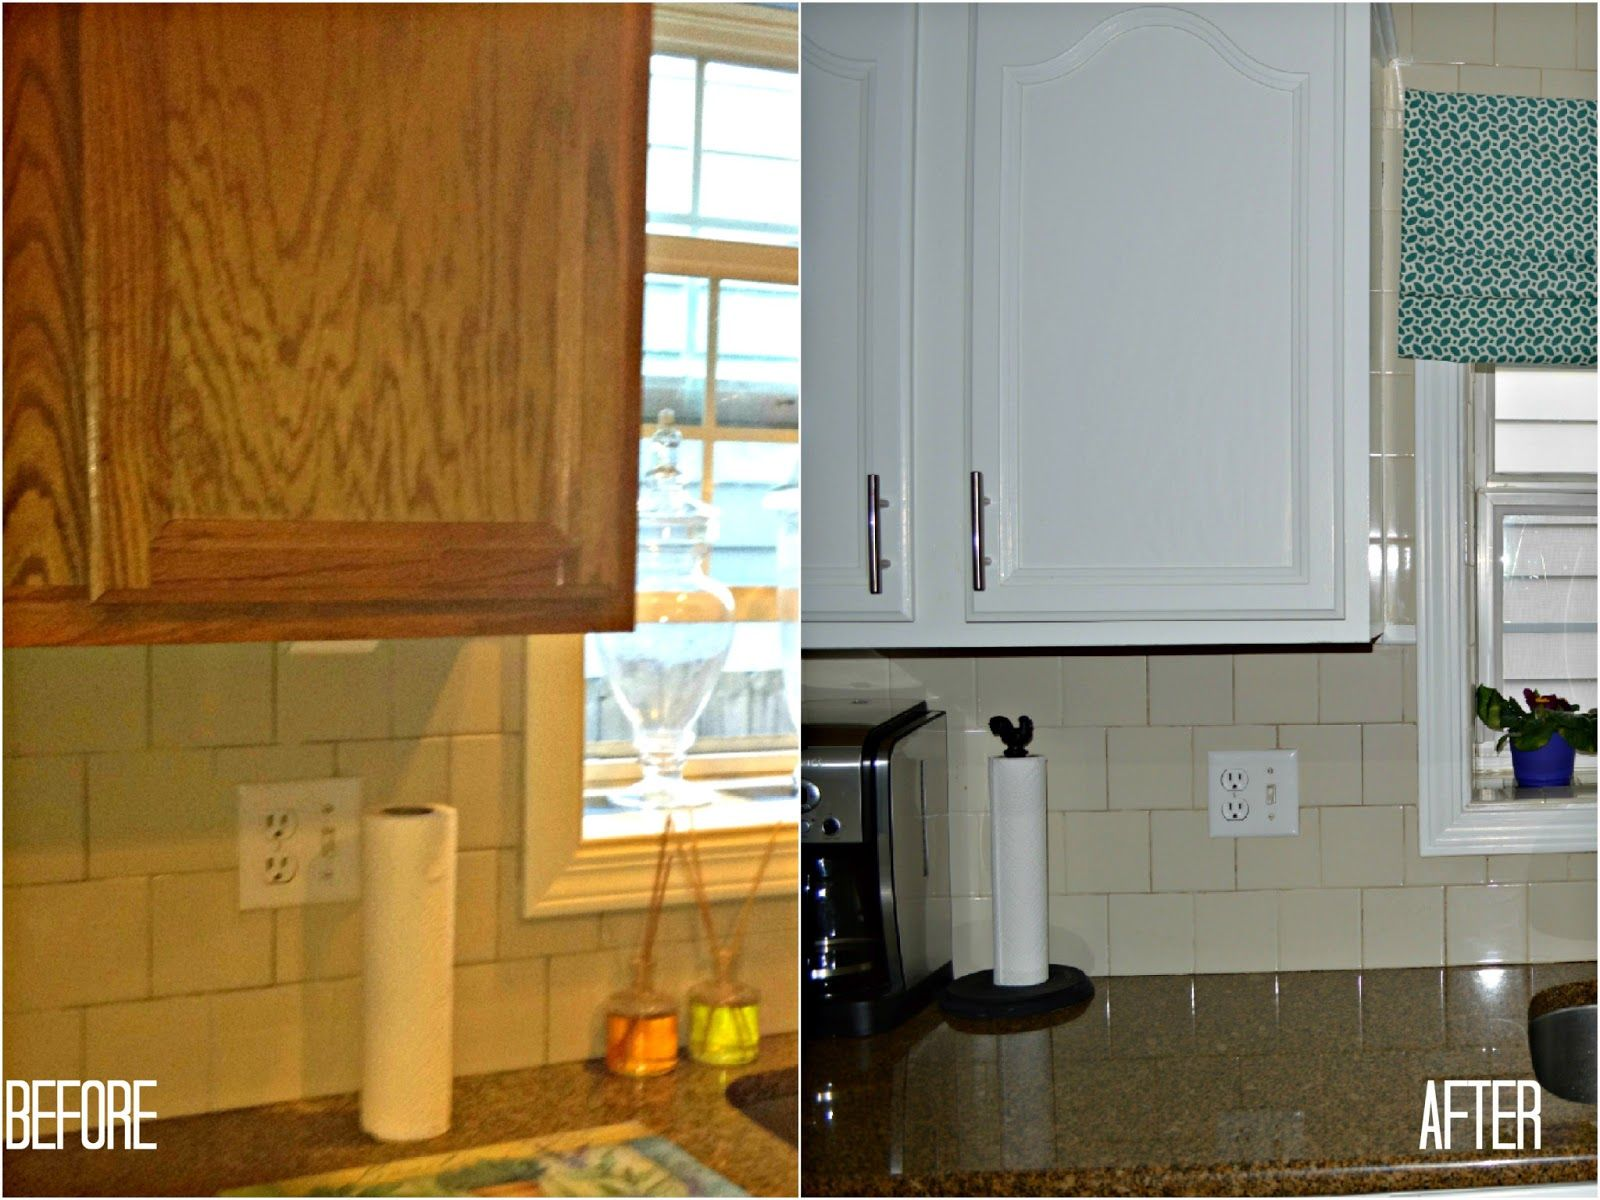 Diy Reface Kitchen Cabinets Kitchen Cabinet Refacing Before And After In Refacing